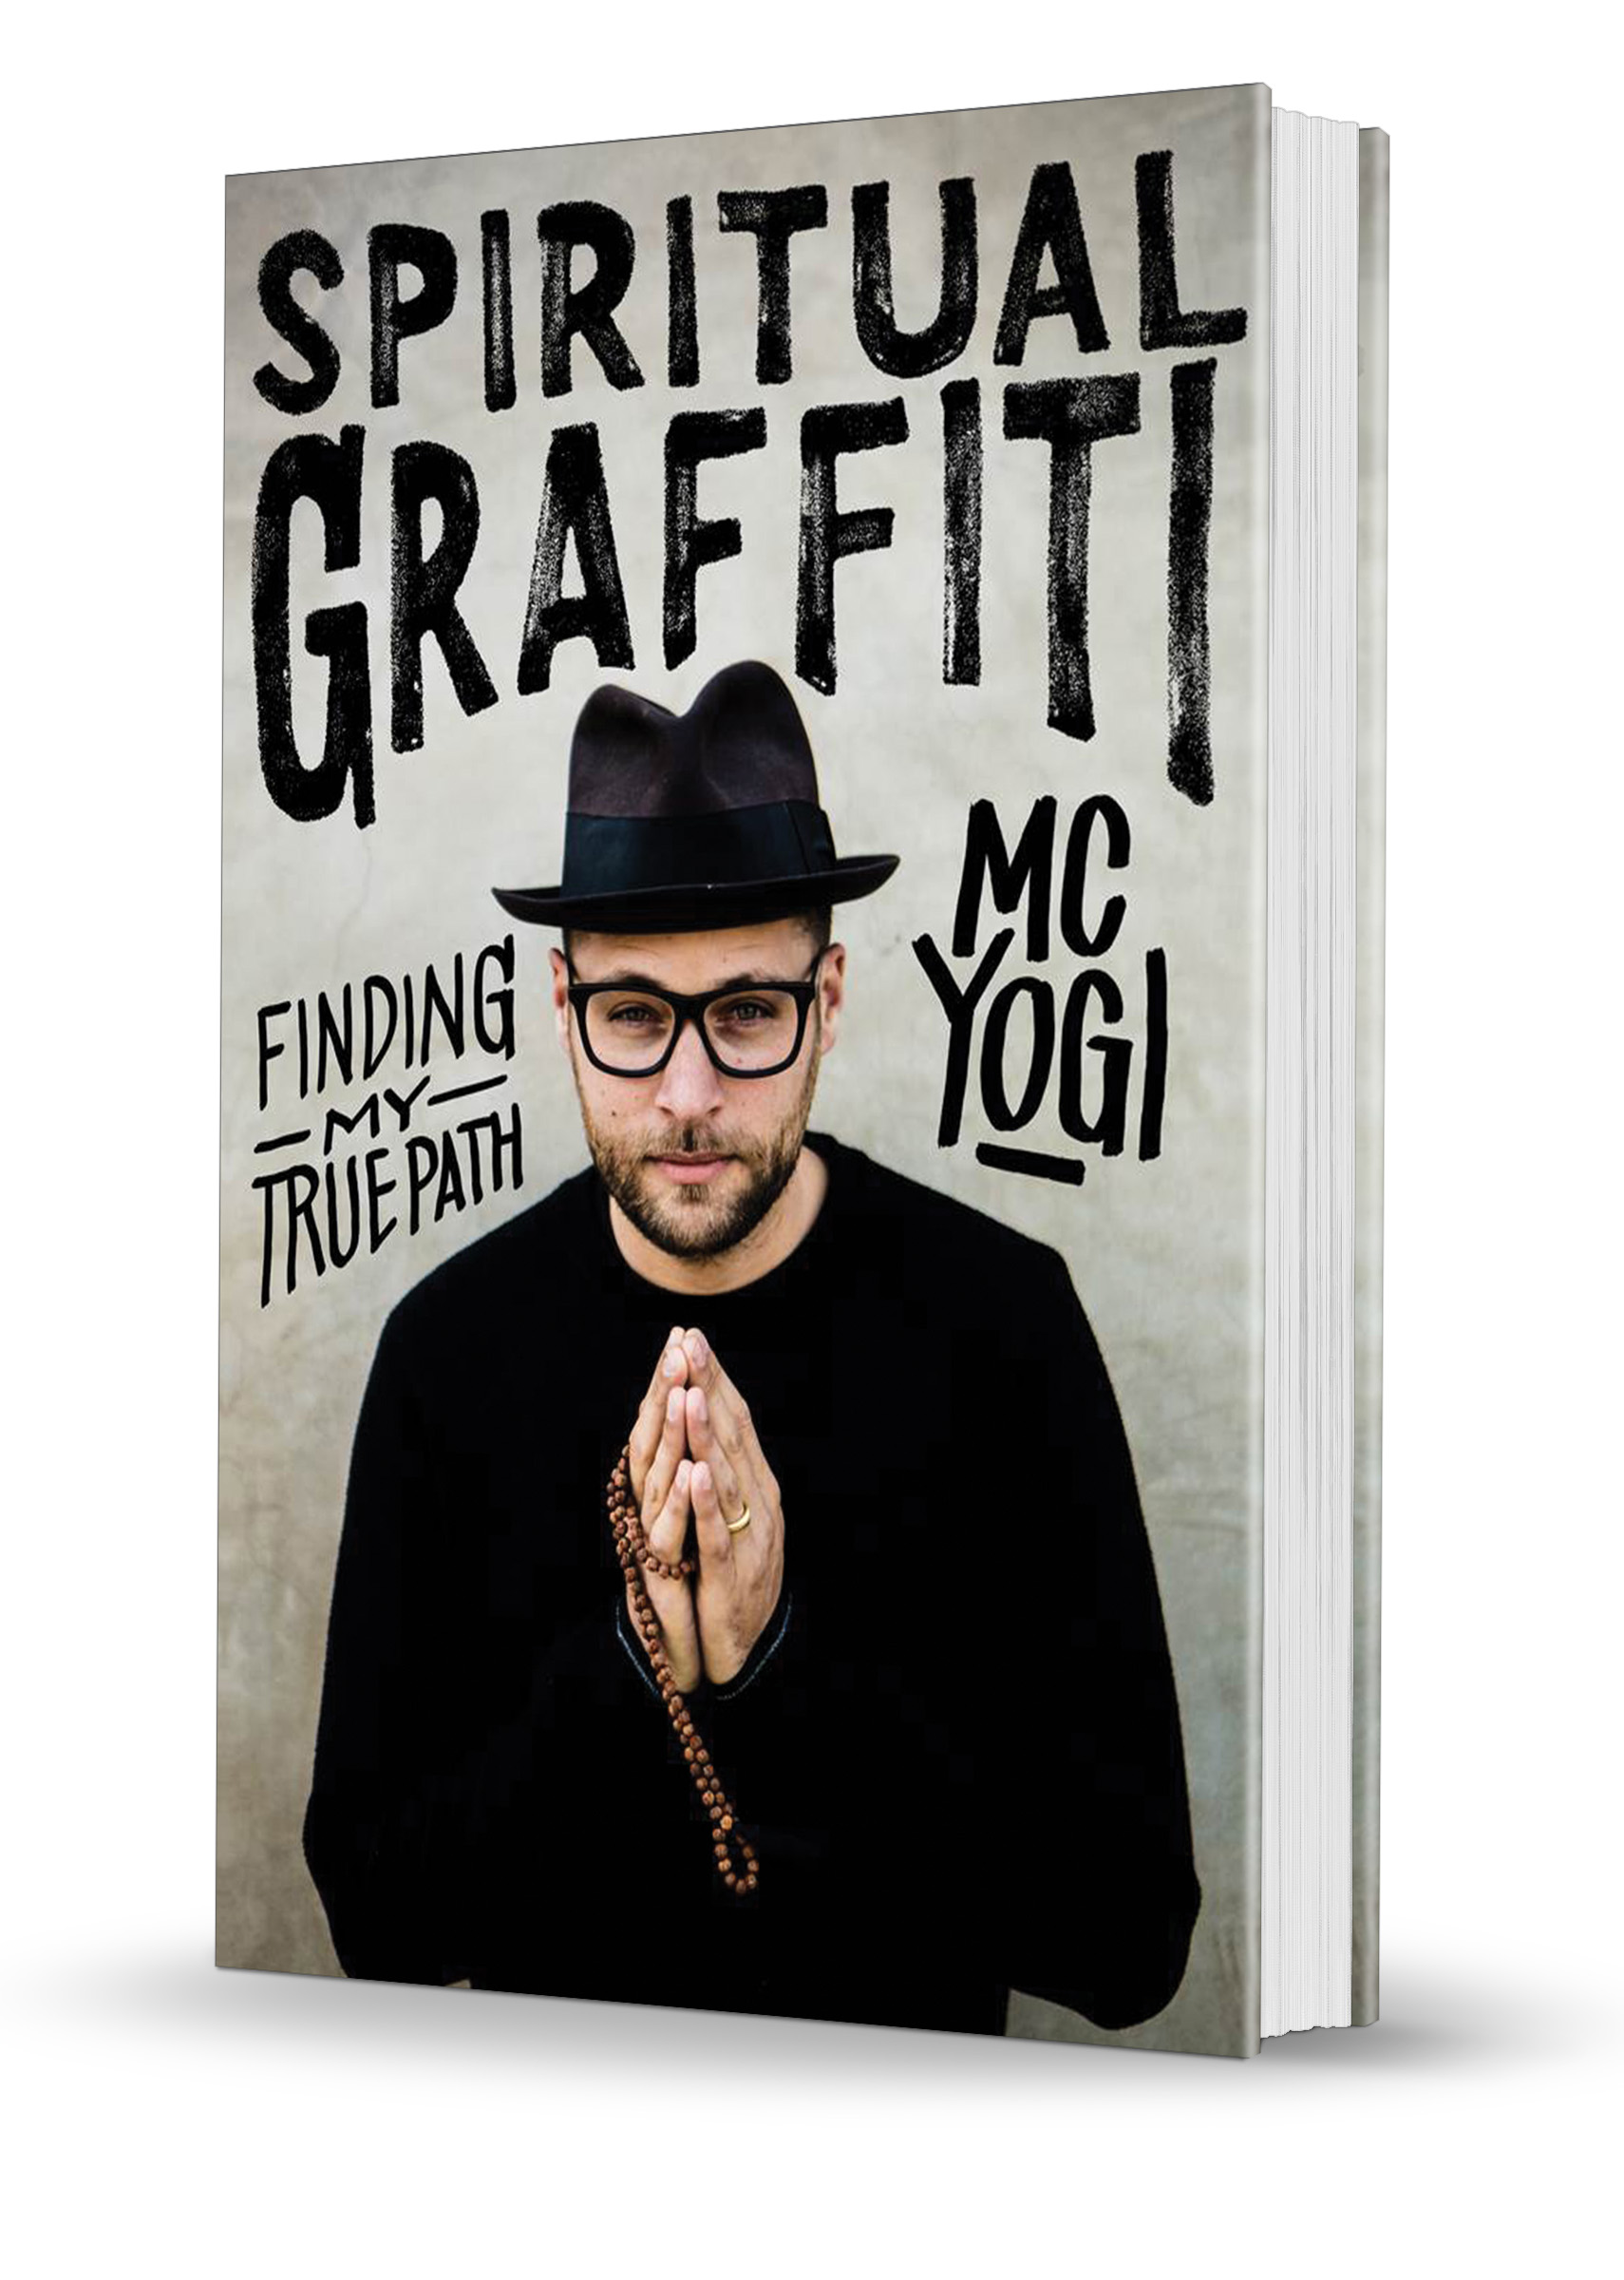 Spiritual Grafficit - Finding my True Path by MC YOGI